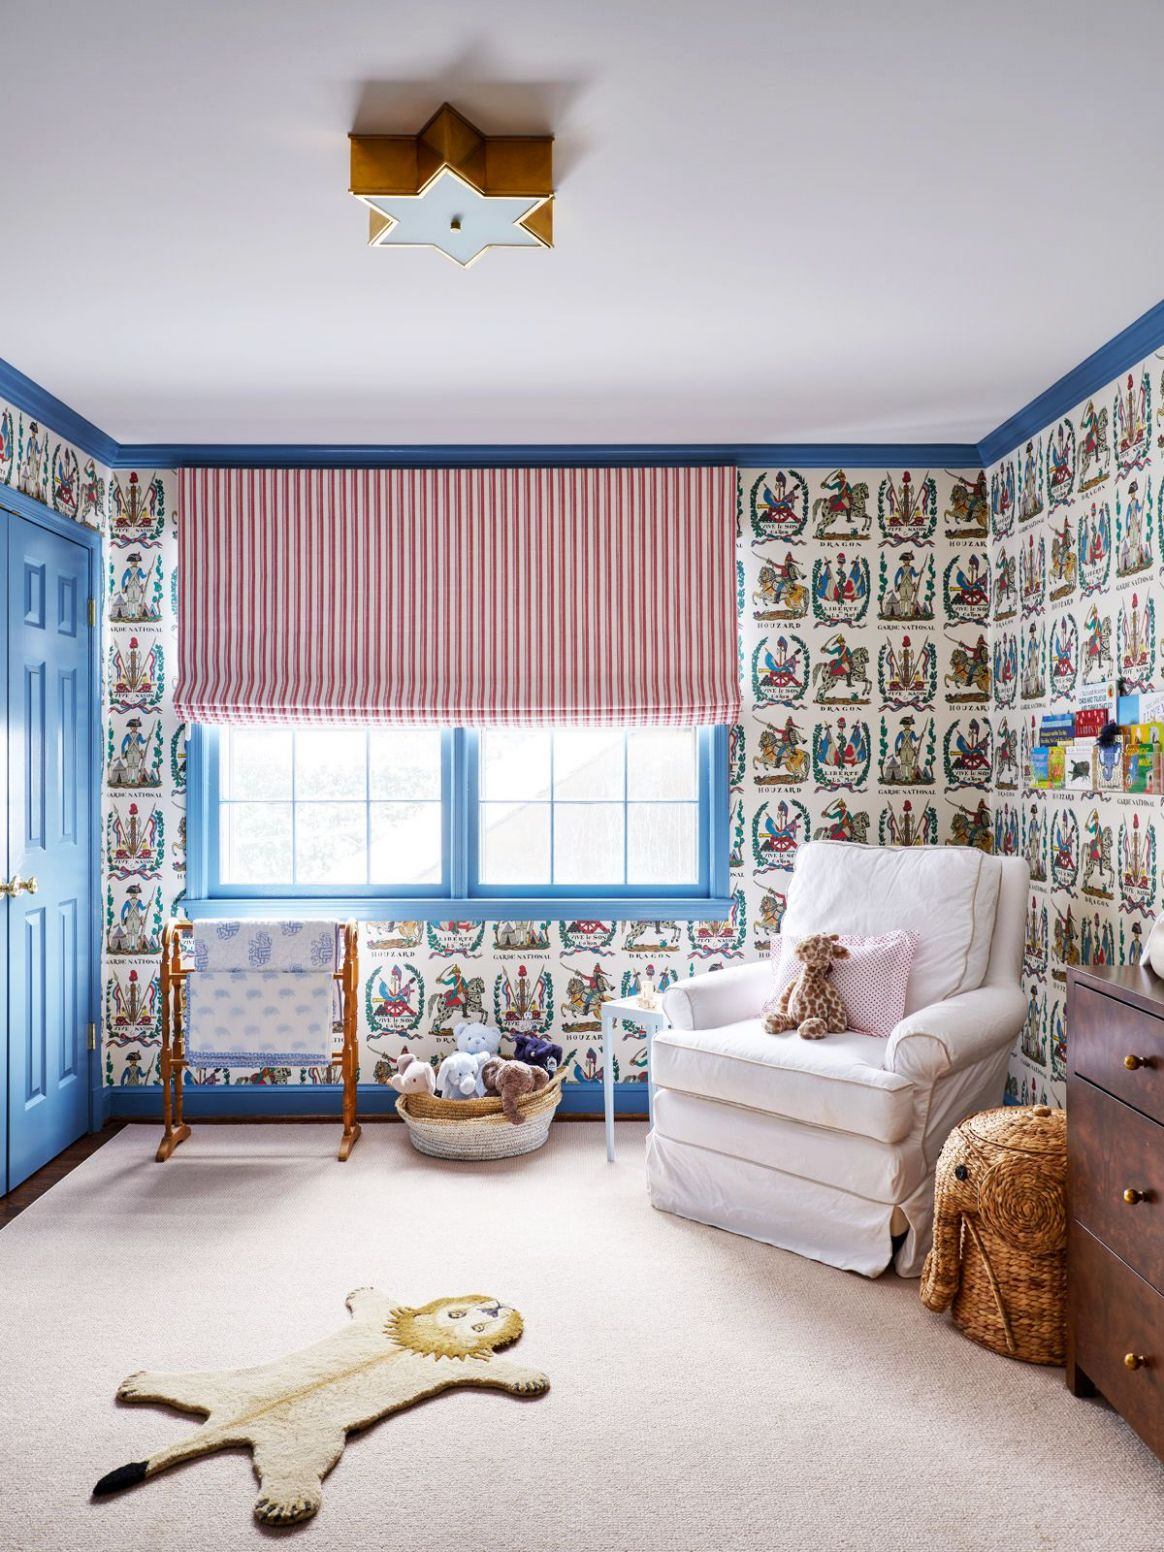 9 Cute Nursery Decorating Ideas - Baby Room Designs for Chic Parents